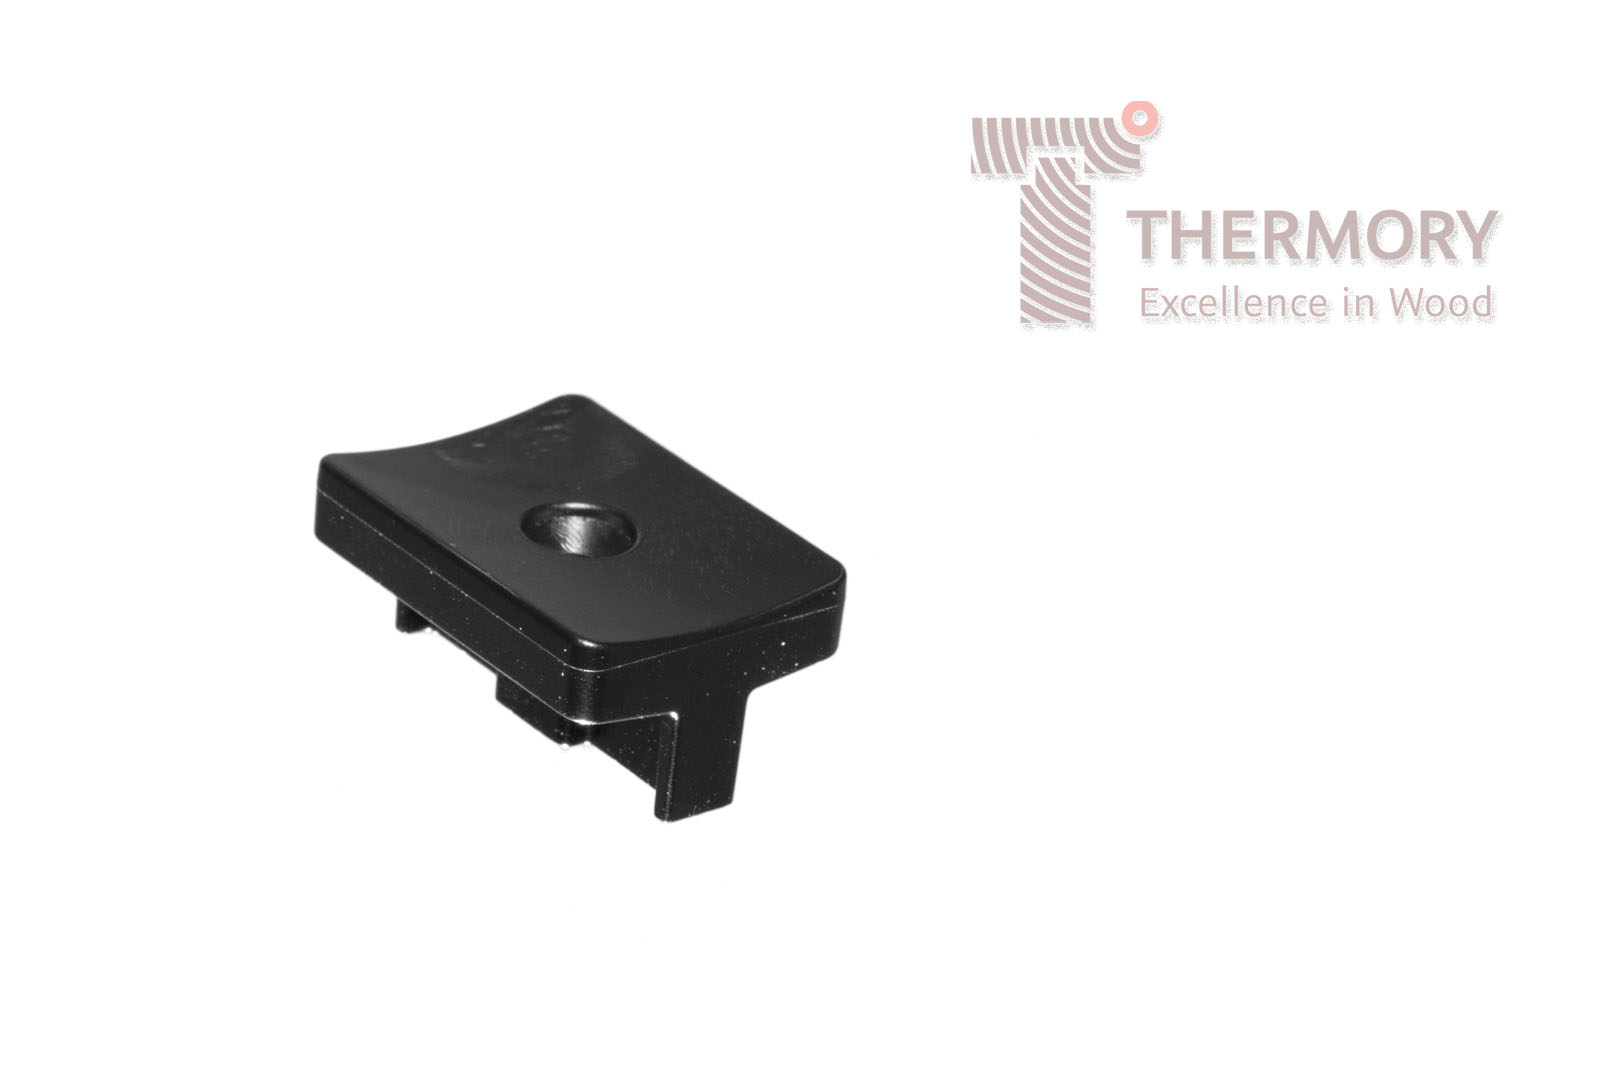 Thermory®Plastic Clip - The plastic clips works in the same way as the steel clip, they are screwed into the joists and the decking boards simply slot into the profile. Product InformationSimple Thermory® Hidden Fixing SystemDesigned for use with D4 sg, D30 profile decking boardsEasy installationNo visible screwsQuick installation without specialized toolsLeaves a 6mm gap between boards